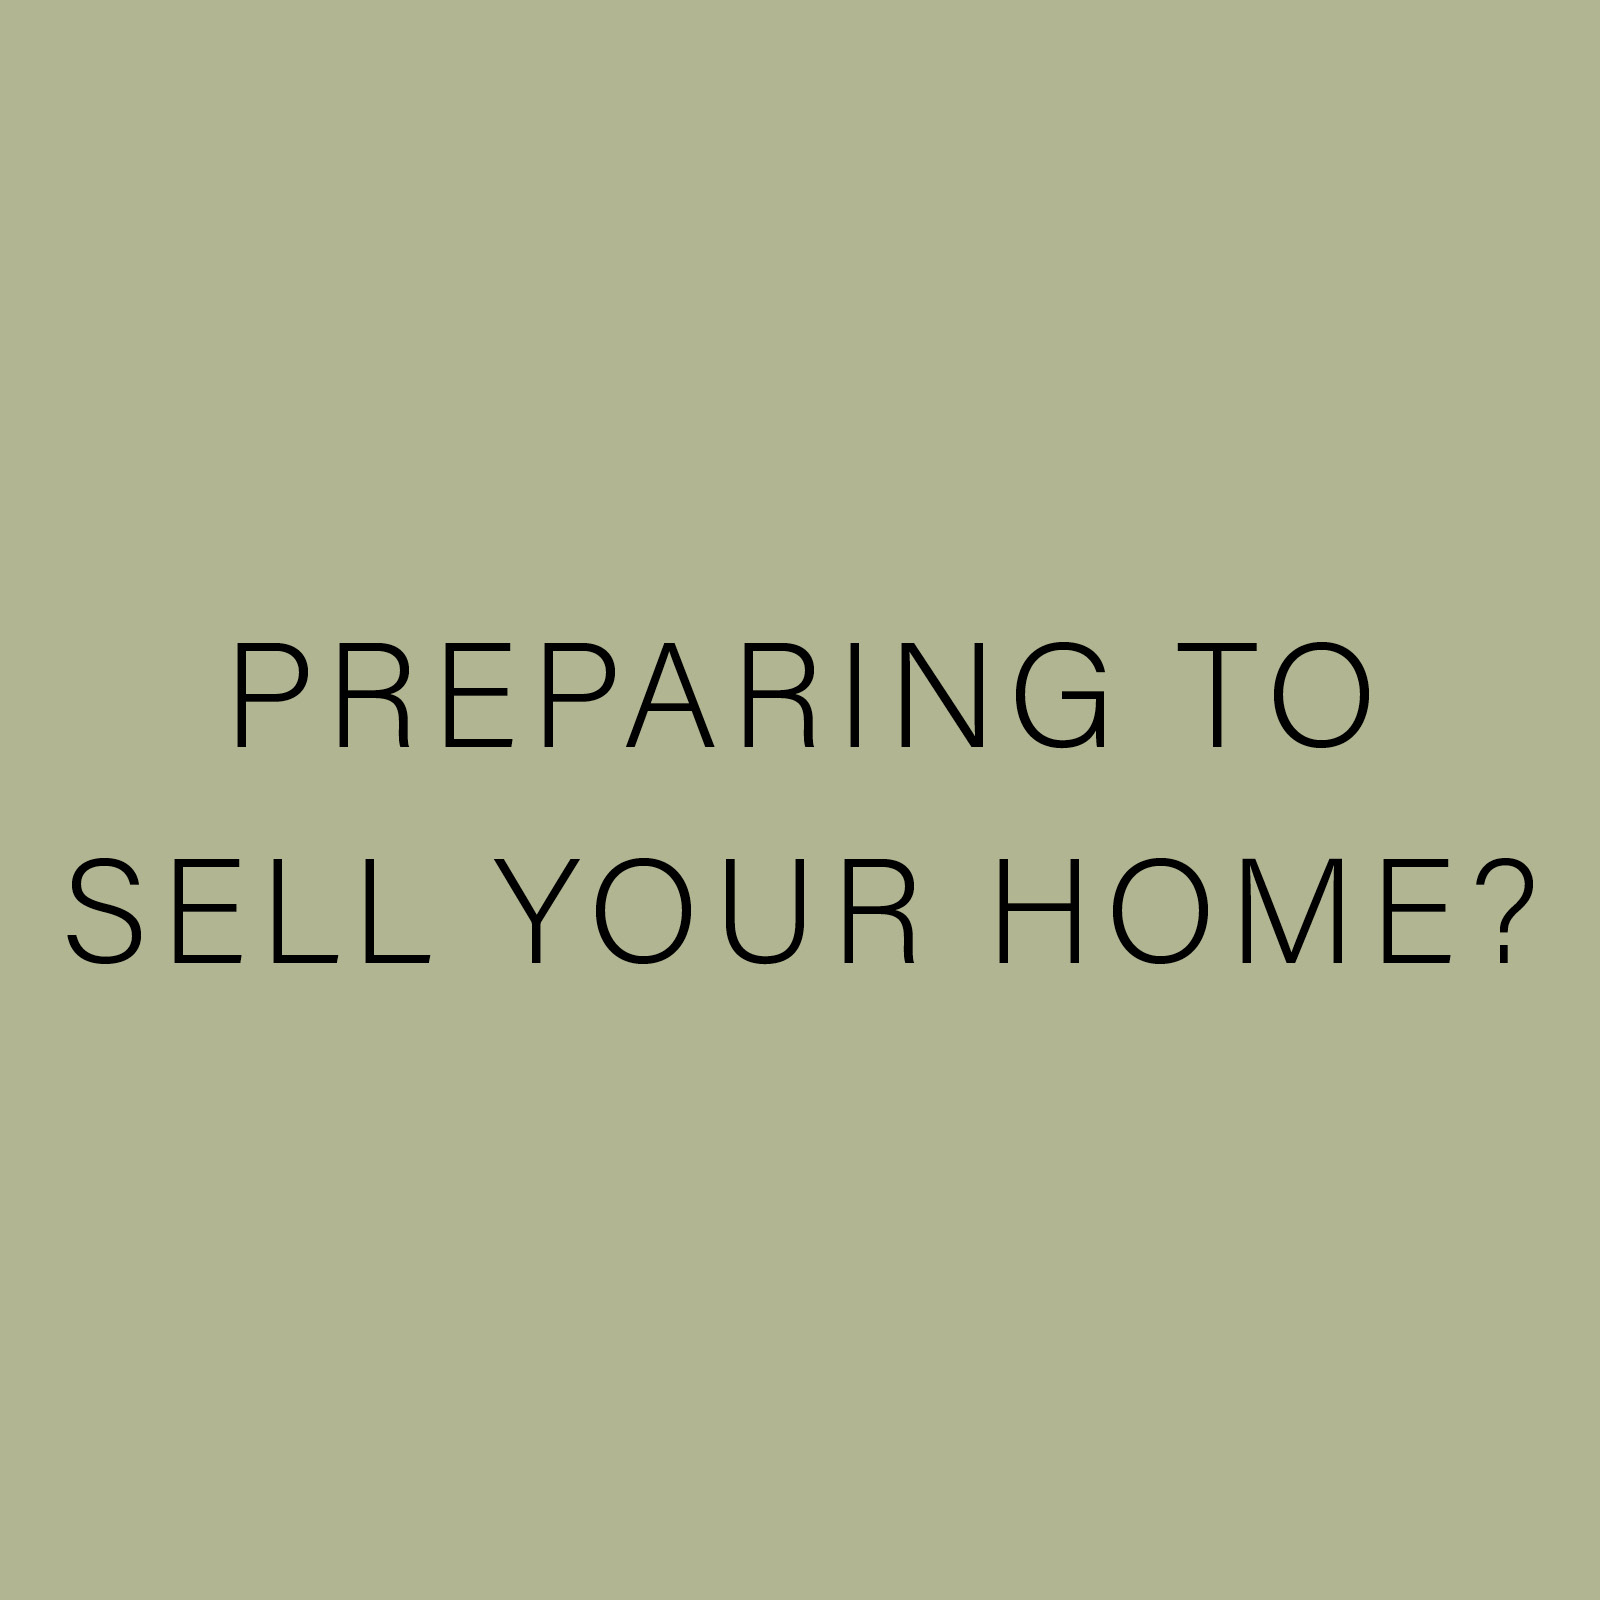 PREPARING TO SELL YOUR HOME?.jpg